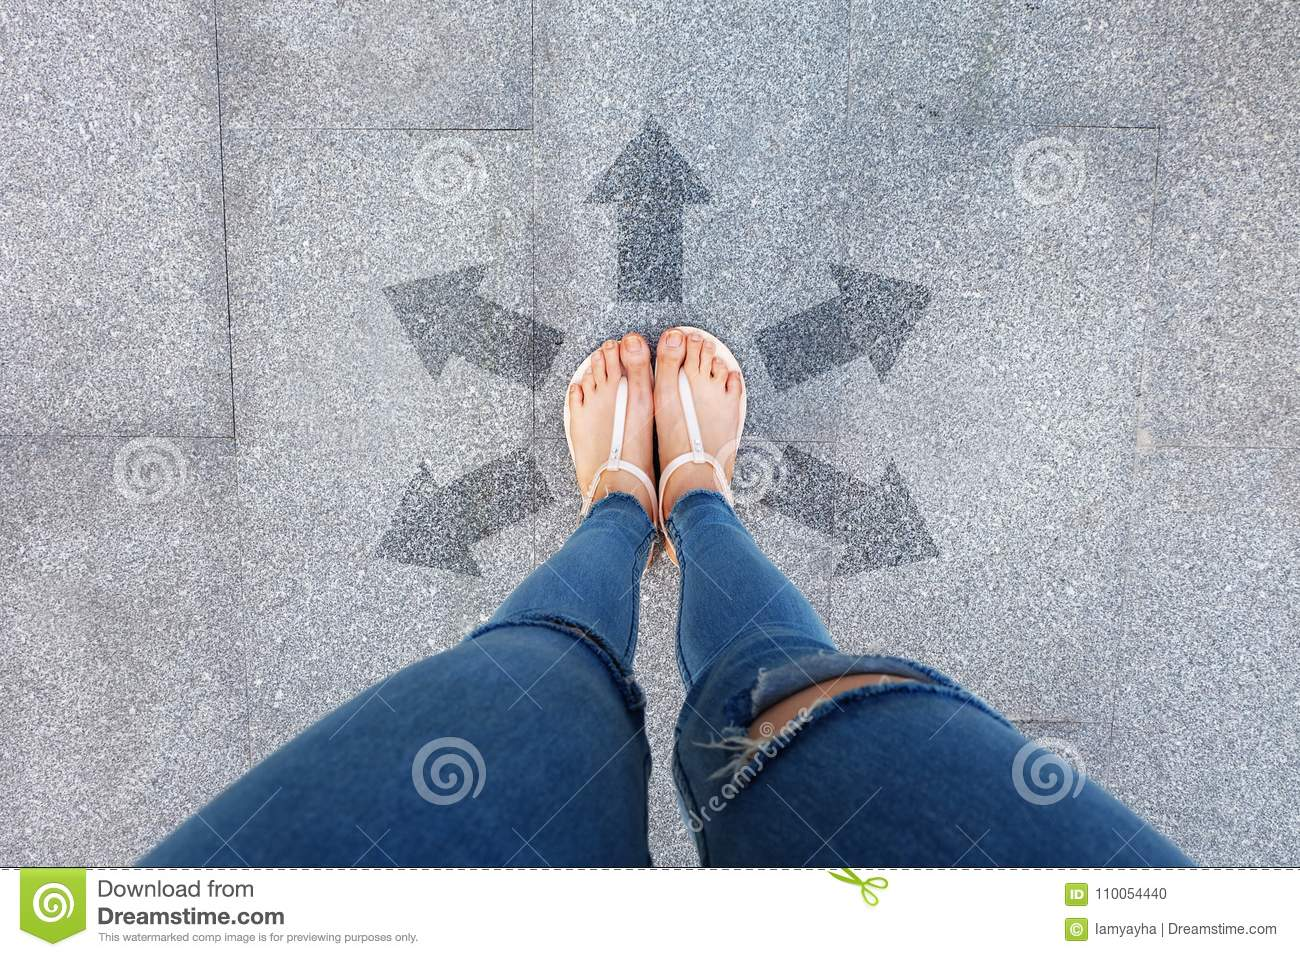 Selfie Shoes with Direction Arrows Choices. Woman Feet and Sandal Standing on Concrete Road Background